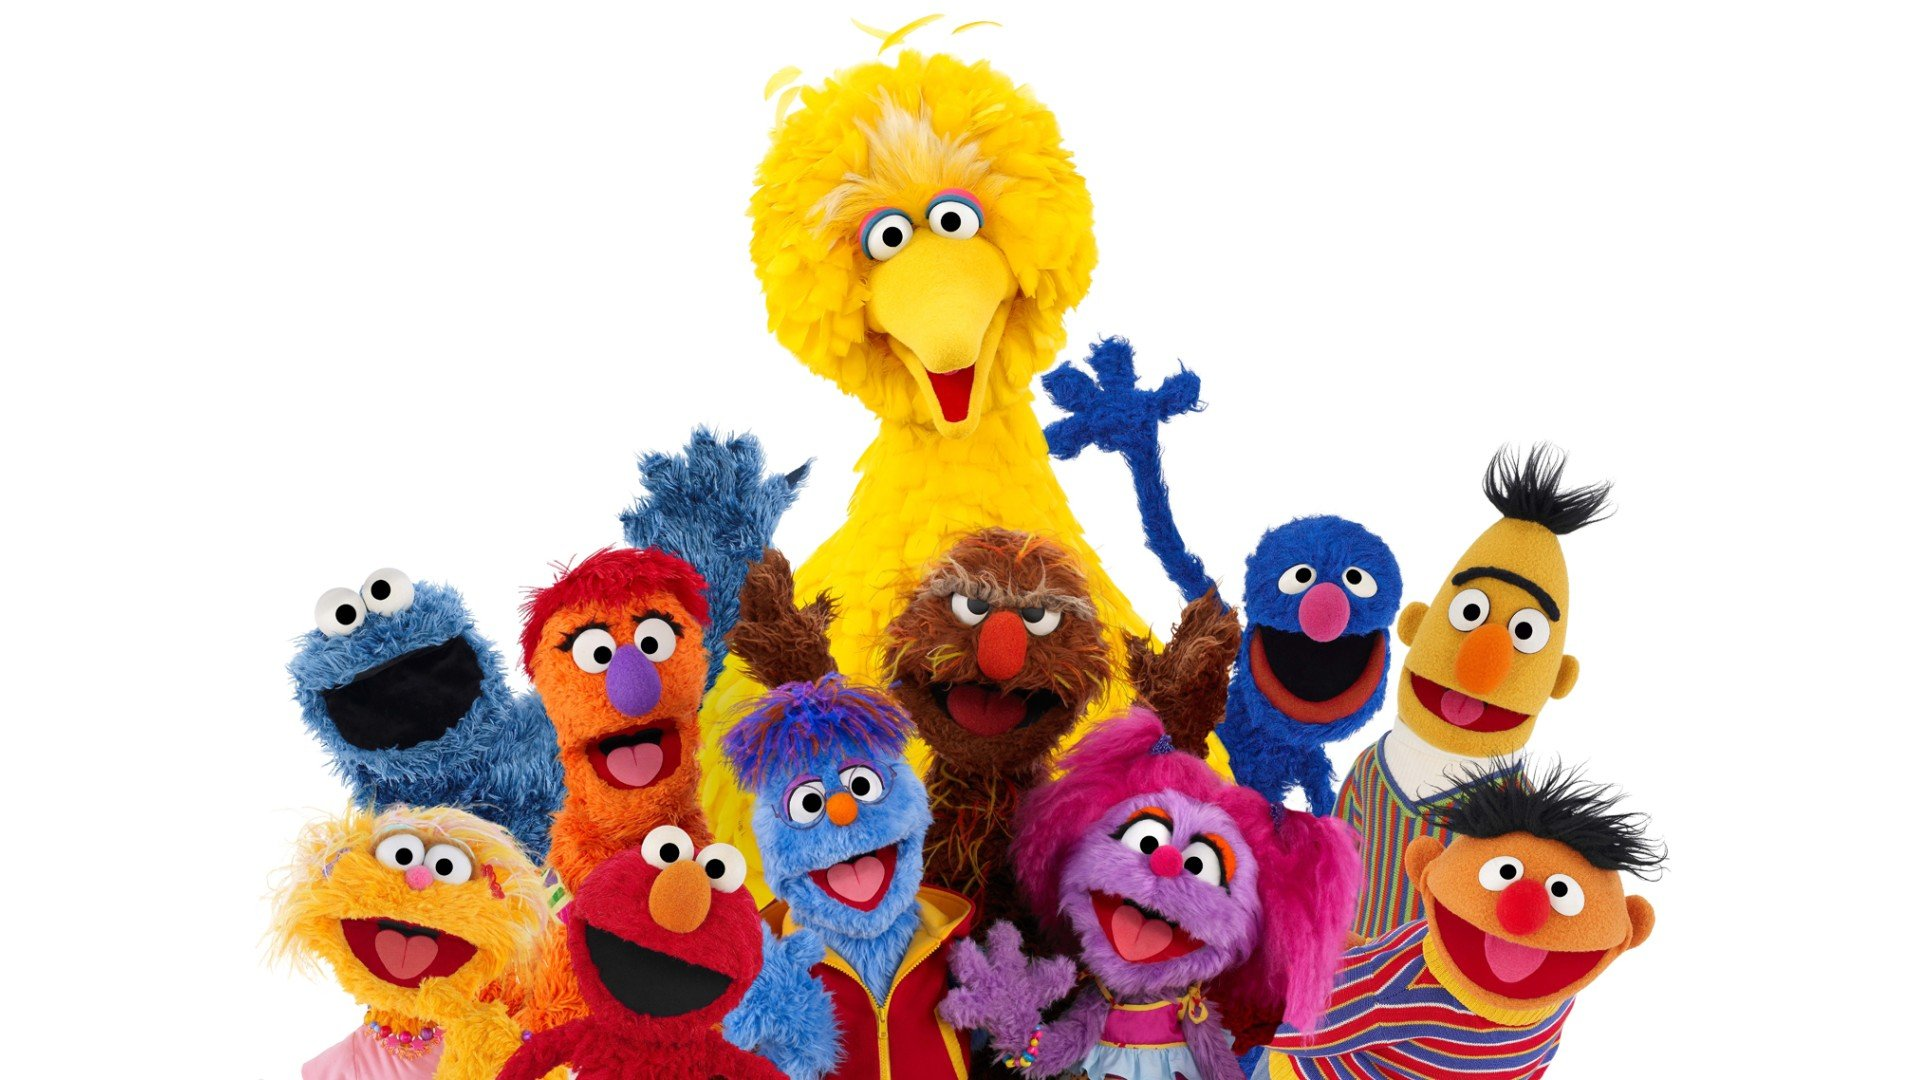 Download Full Hd 1080p Sesame Street Desktop Wallpaper ID62193 For Free